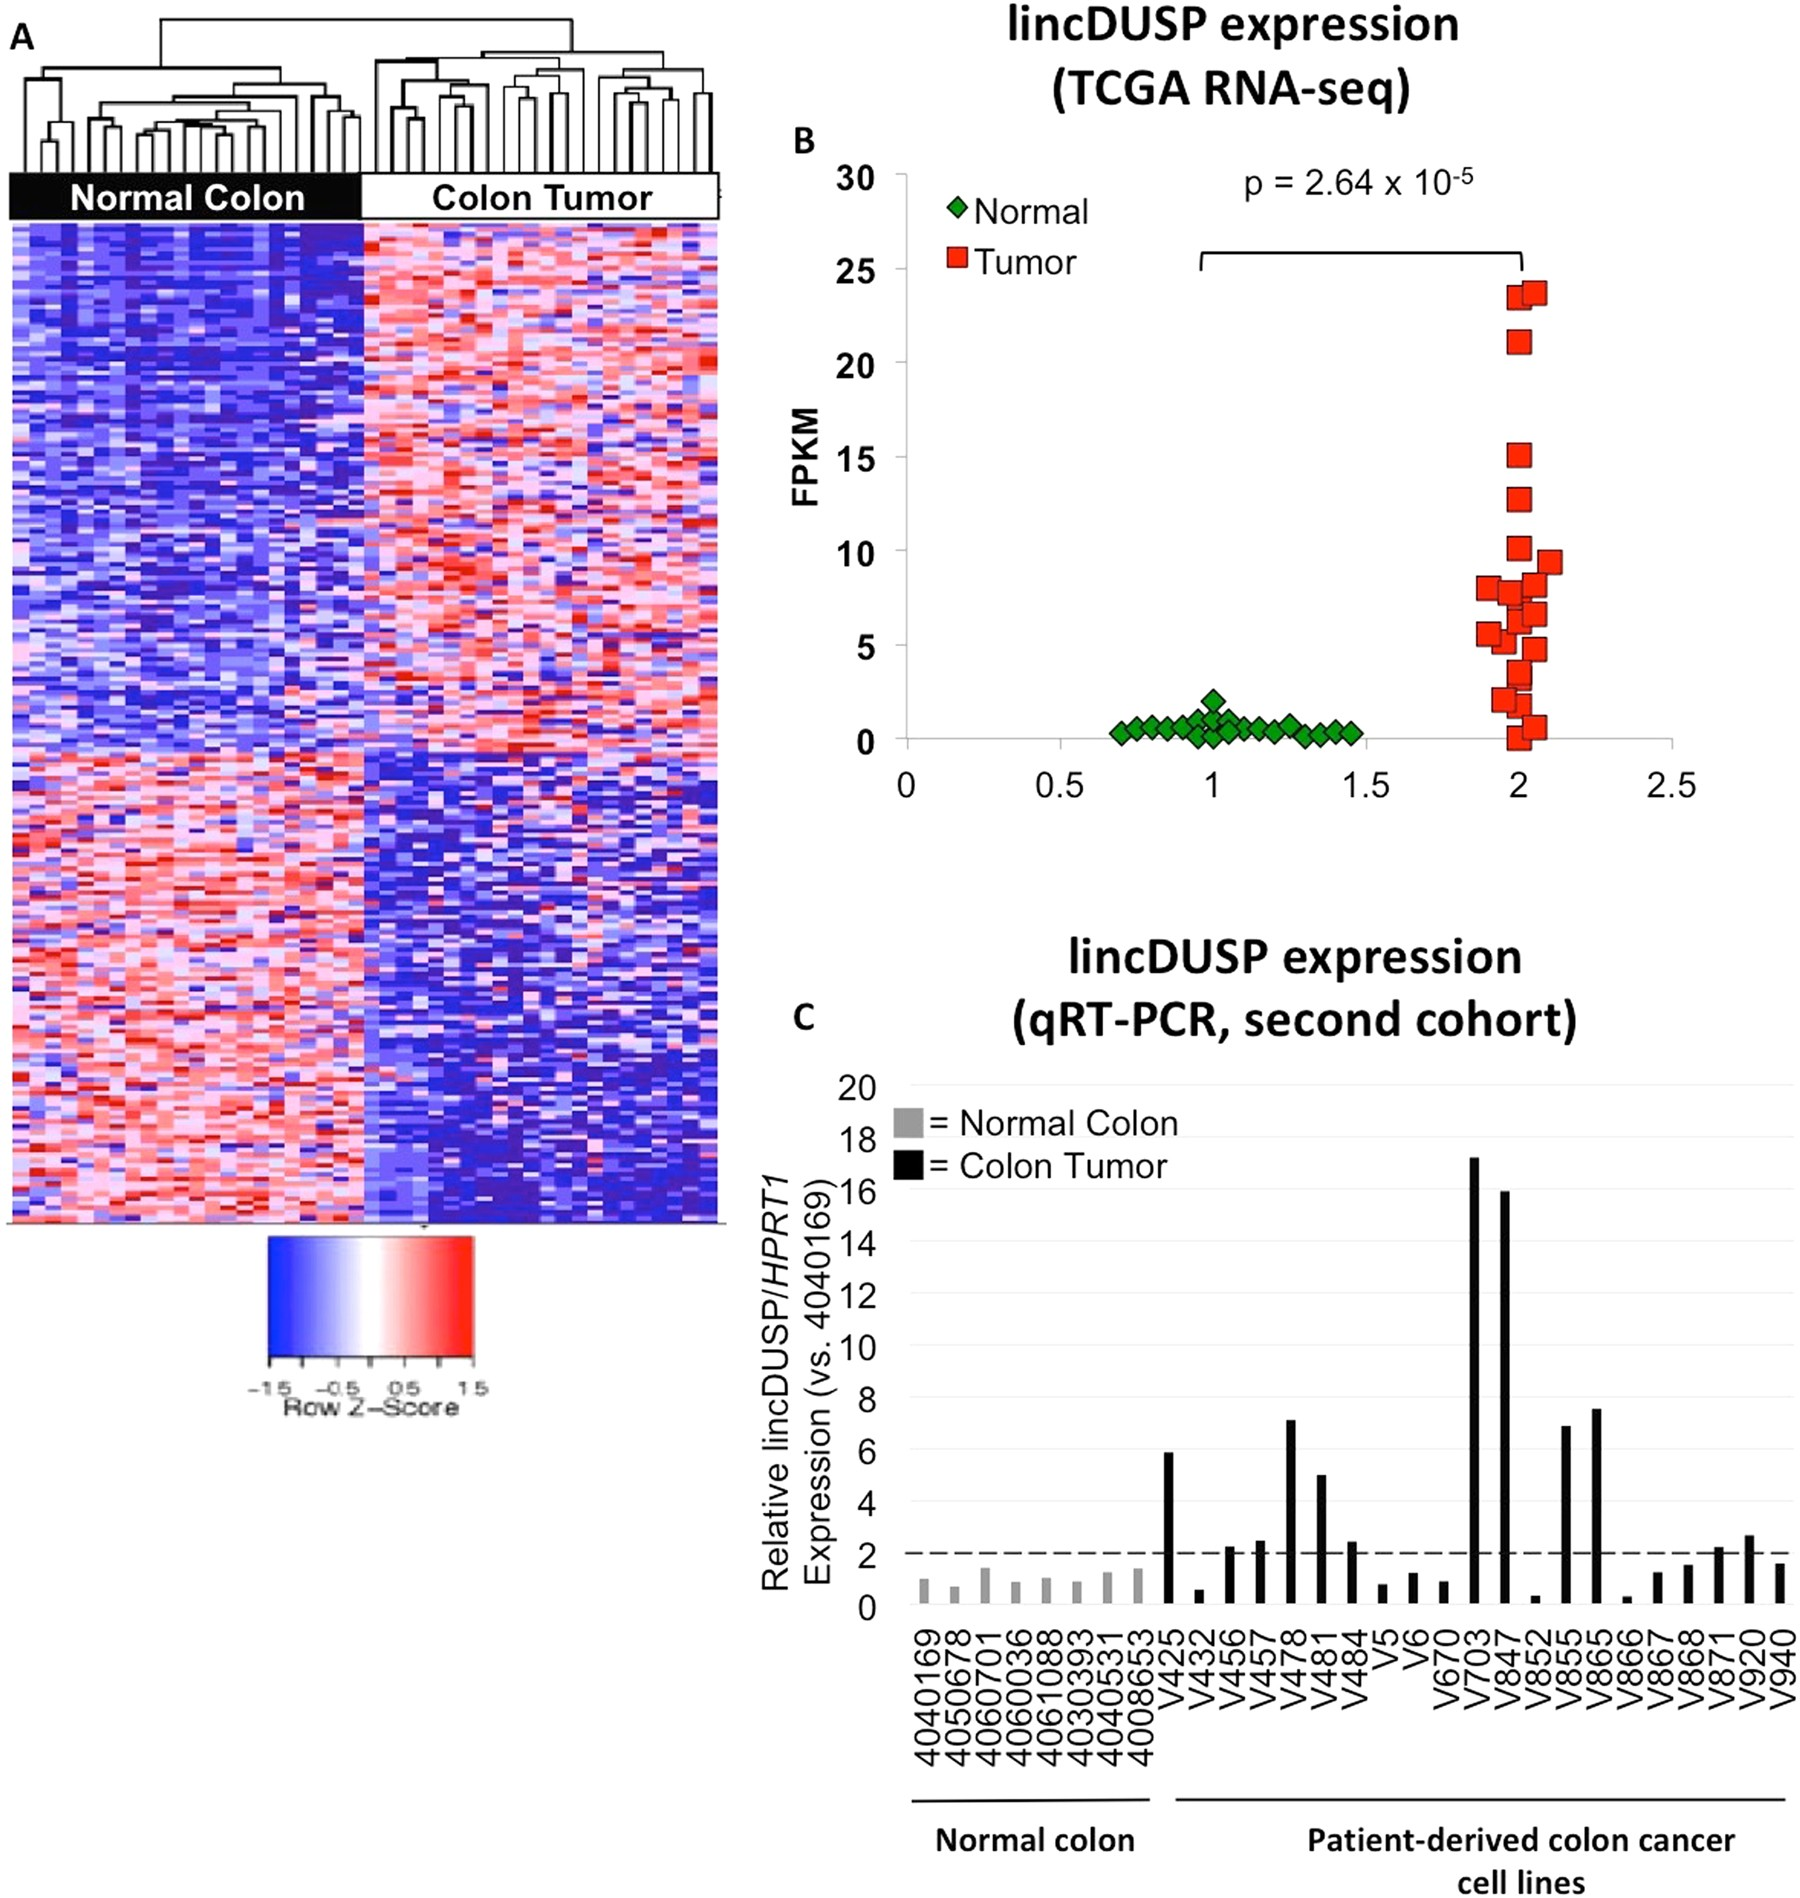 Colon Cancer Upregulated Long Non Coding Rna Lincdusp Regulates Cell